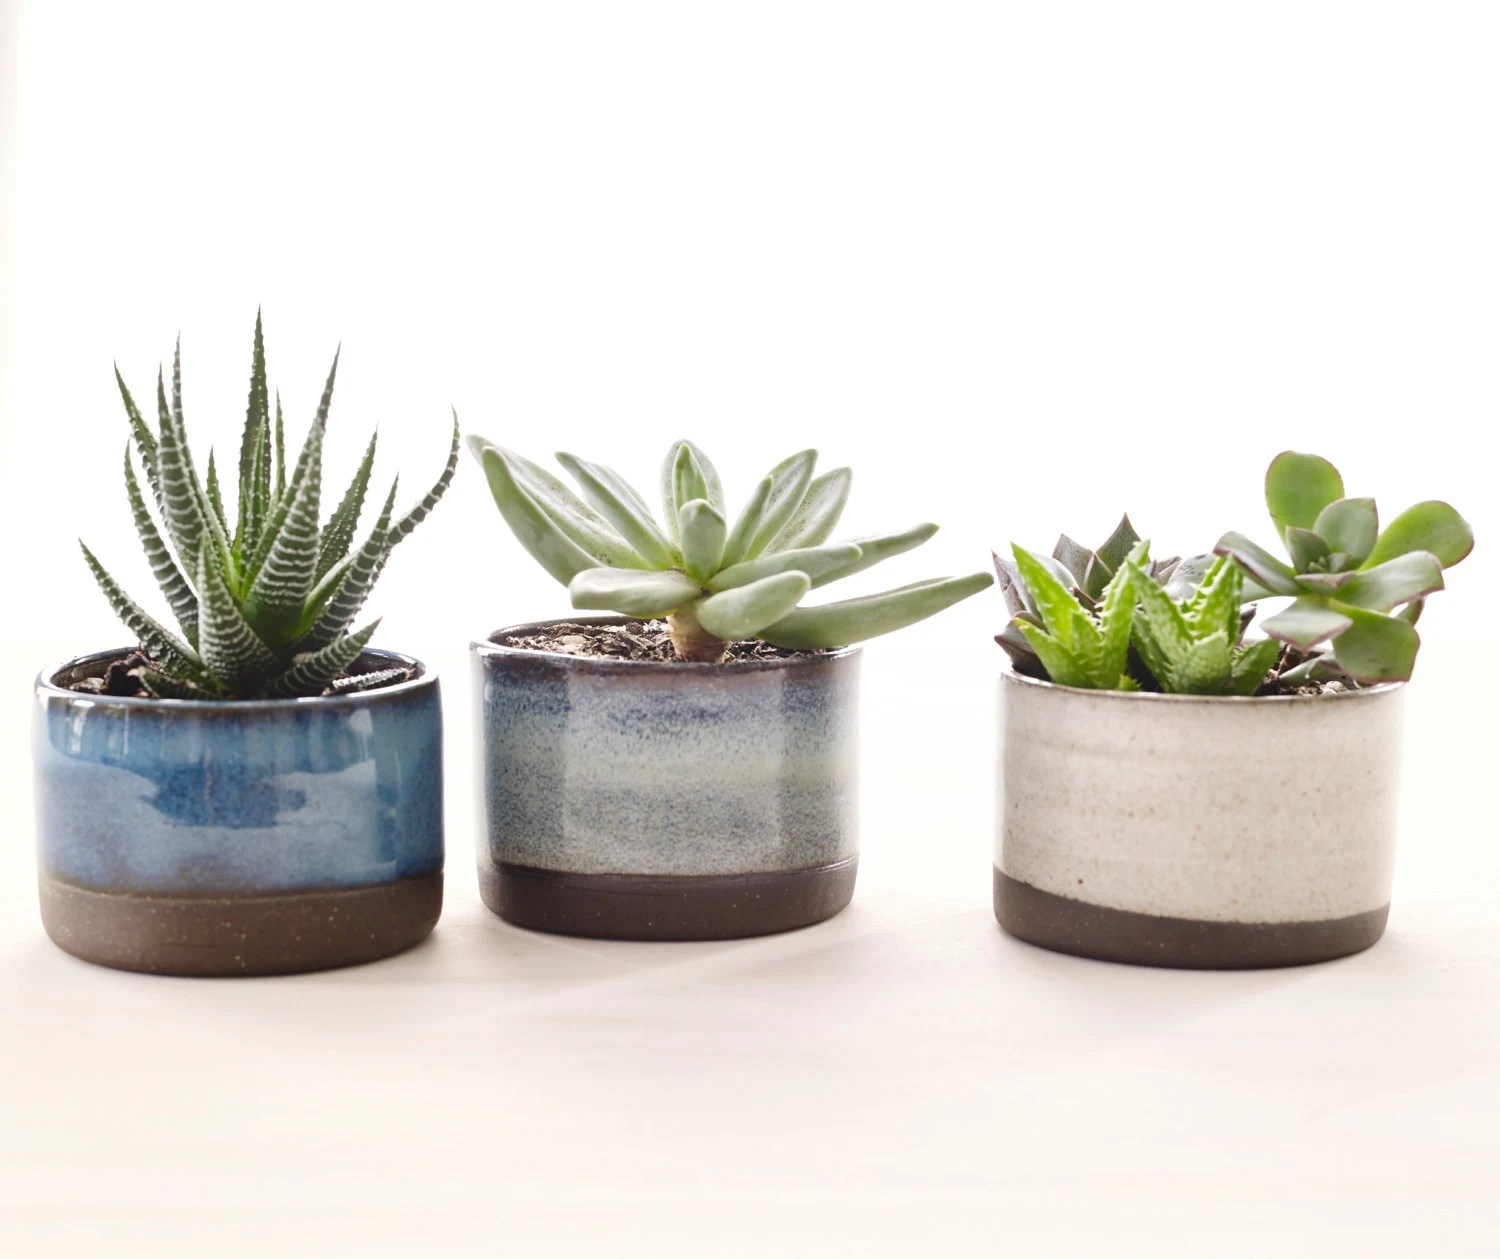 Ceramic Pottery For Plants Set Of Three Ceramic Planters For Succulents